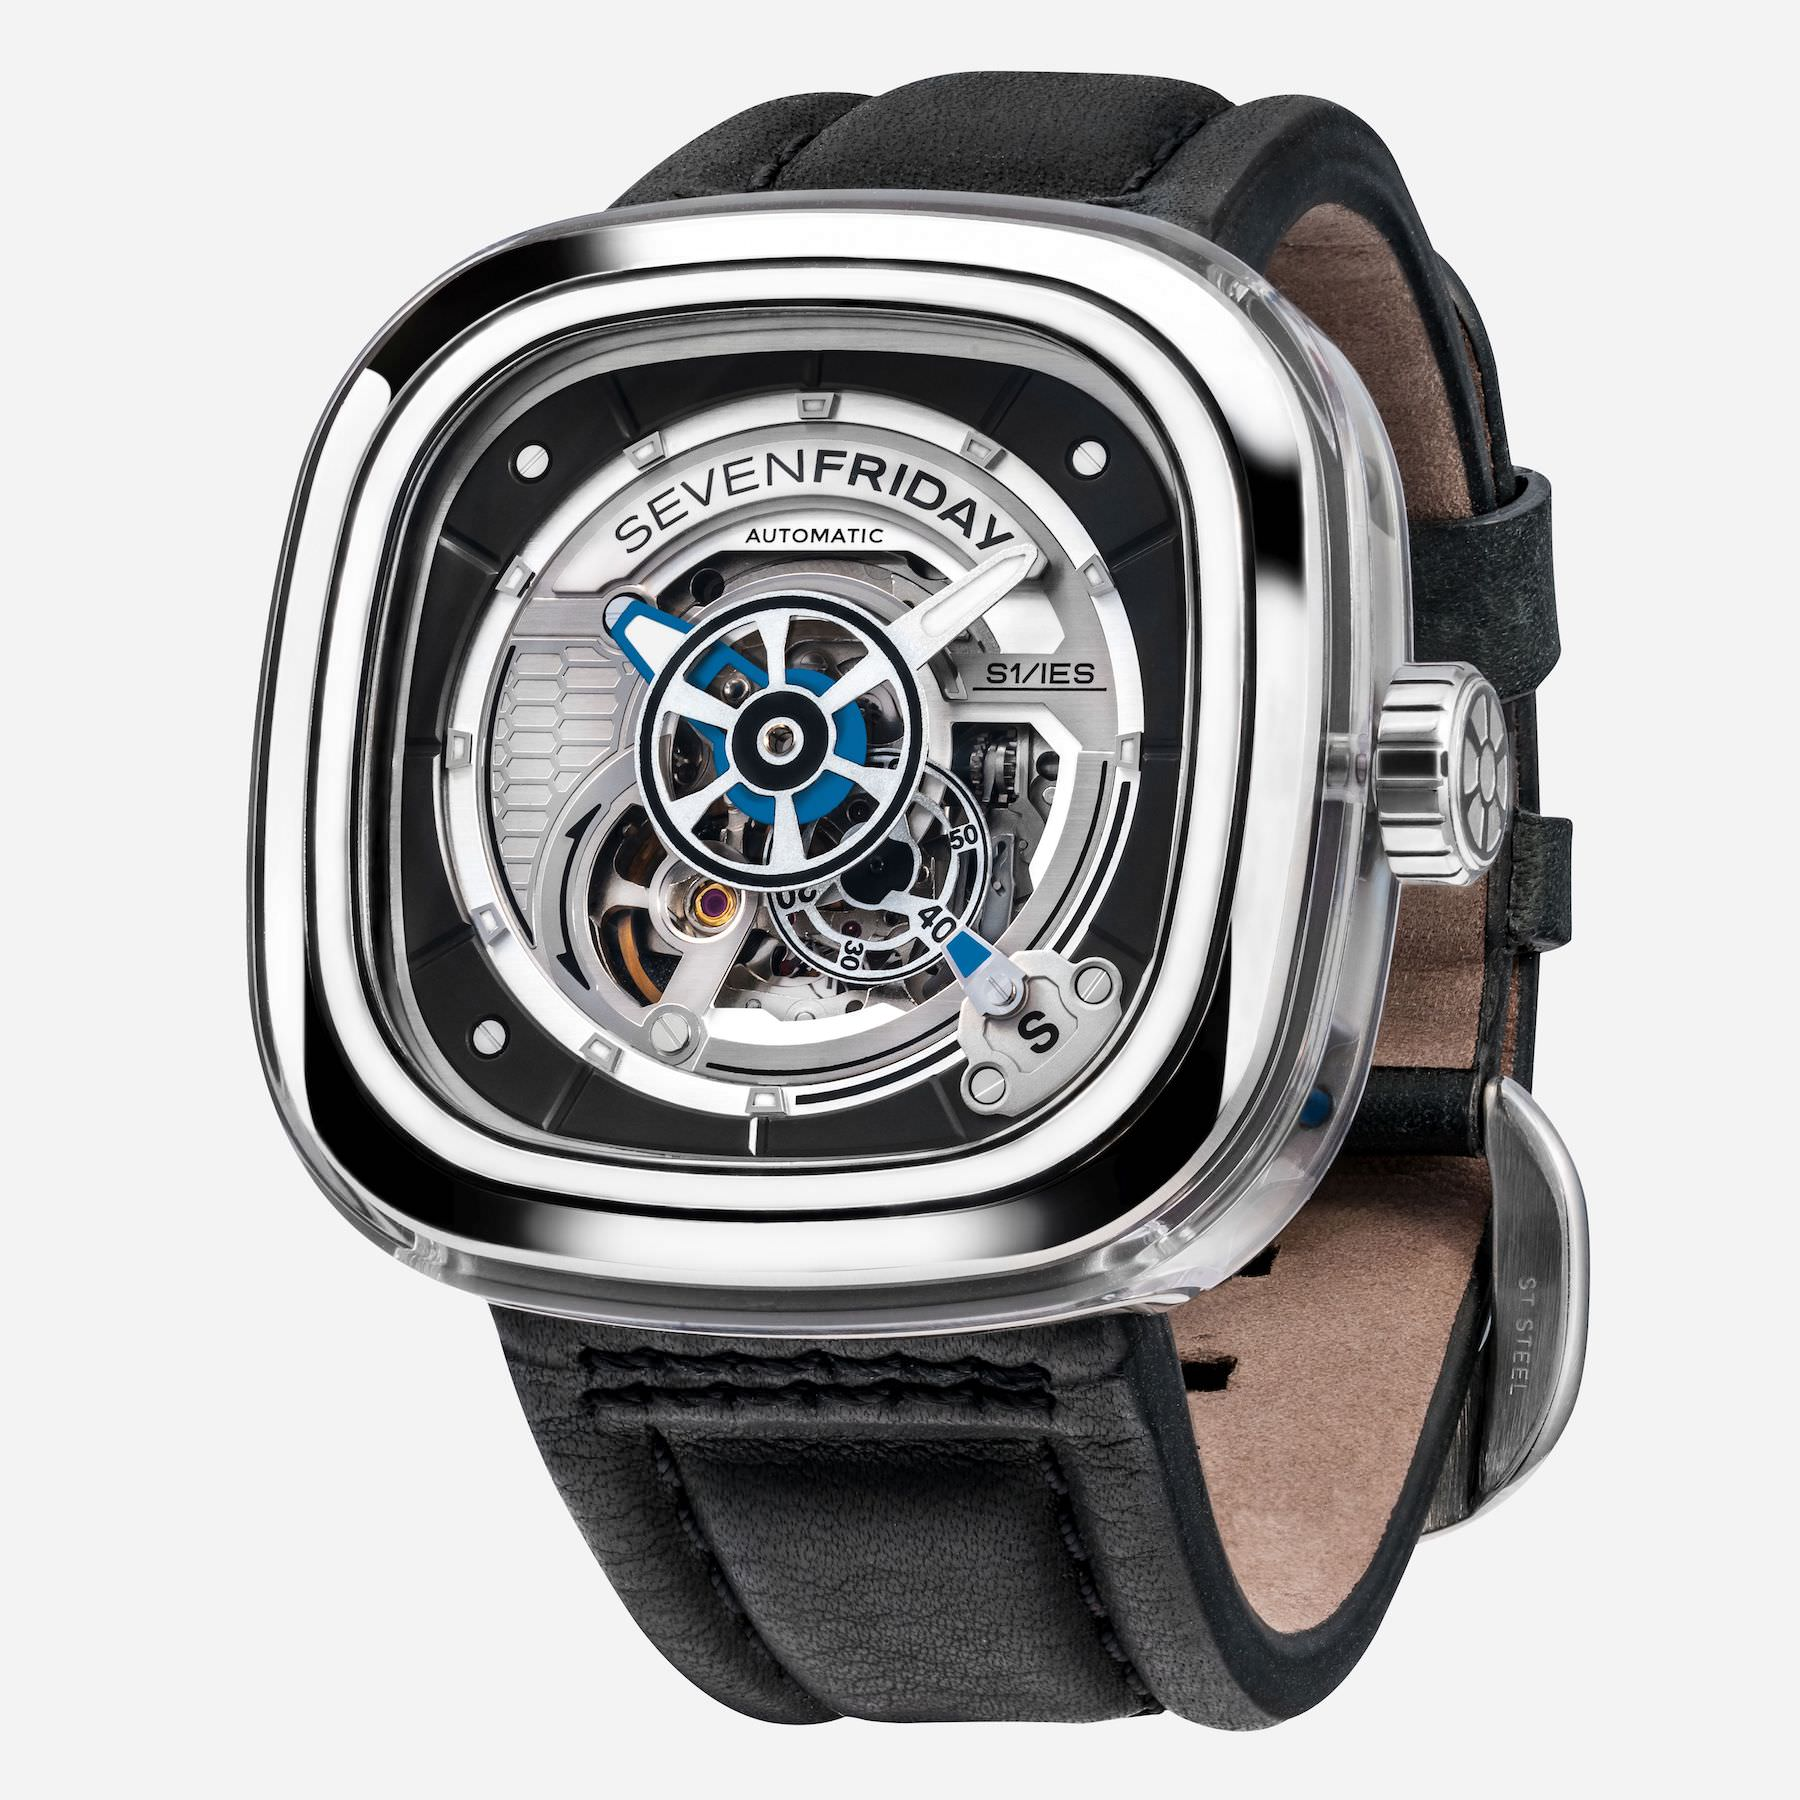 Die Sevenfriday S1-01 Oblique